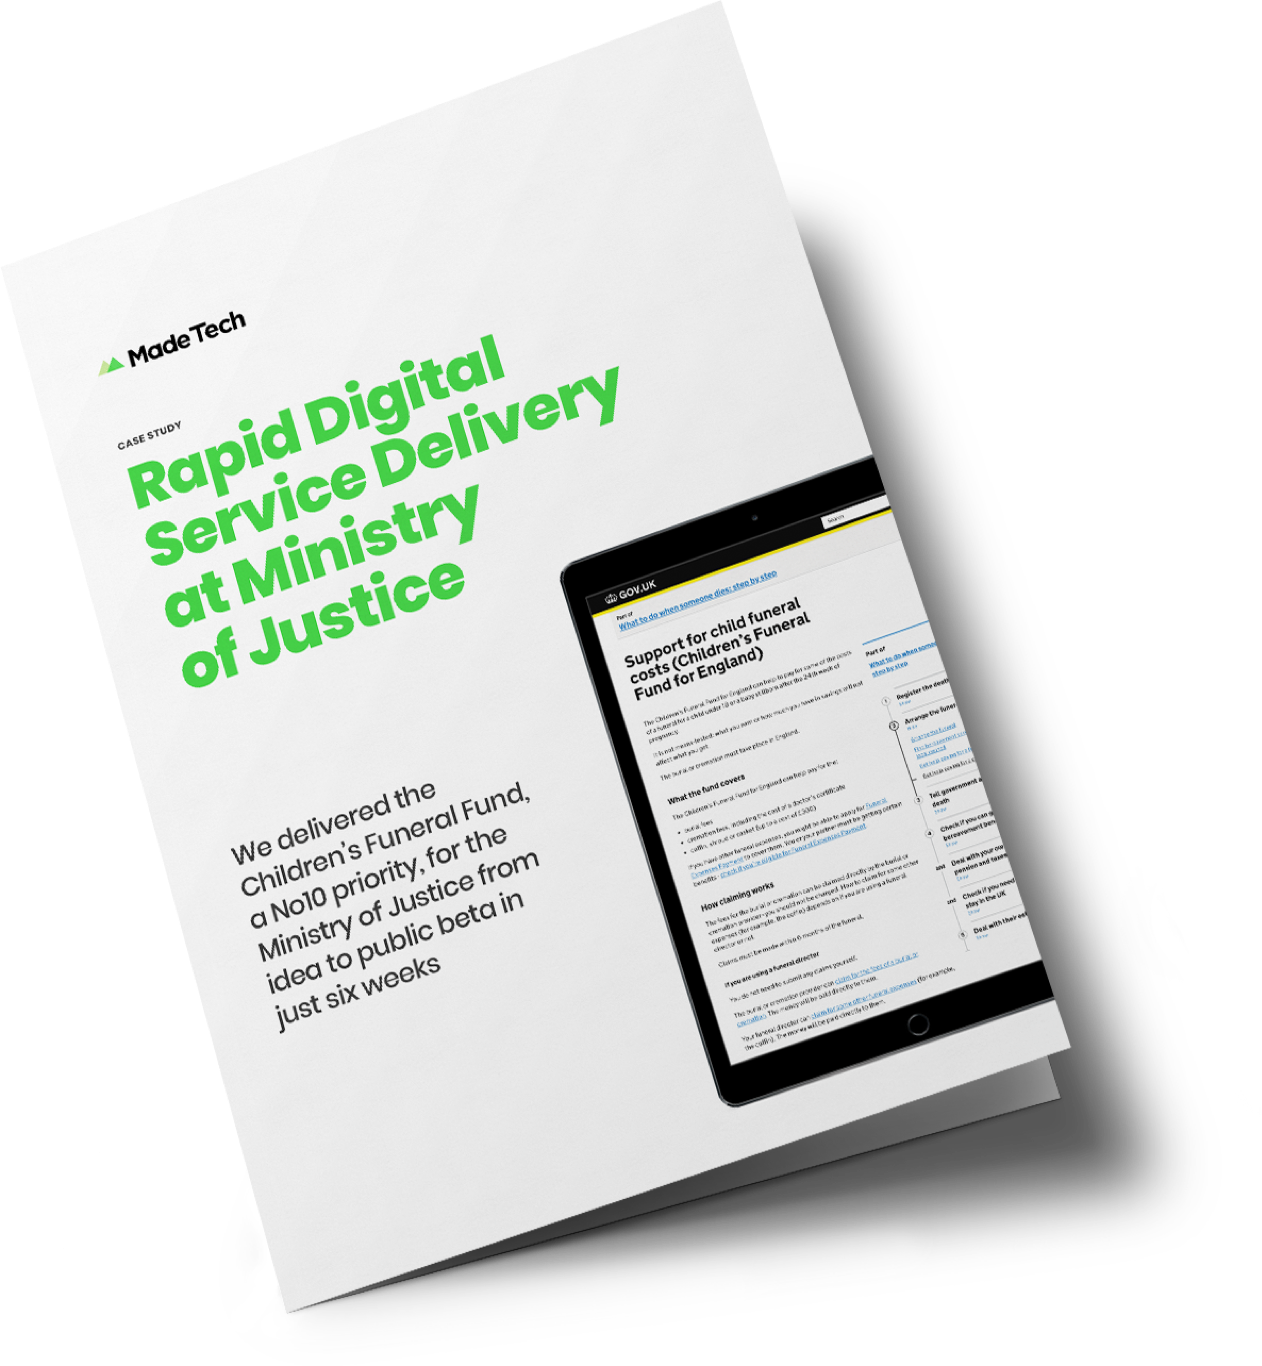 Rapid Digital Service Delivery at Ministry of Justice case study cover